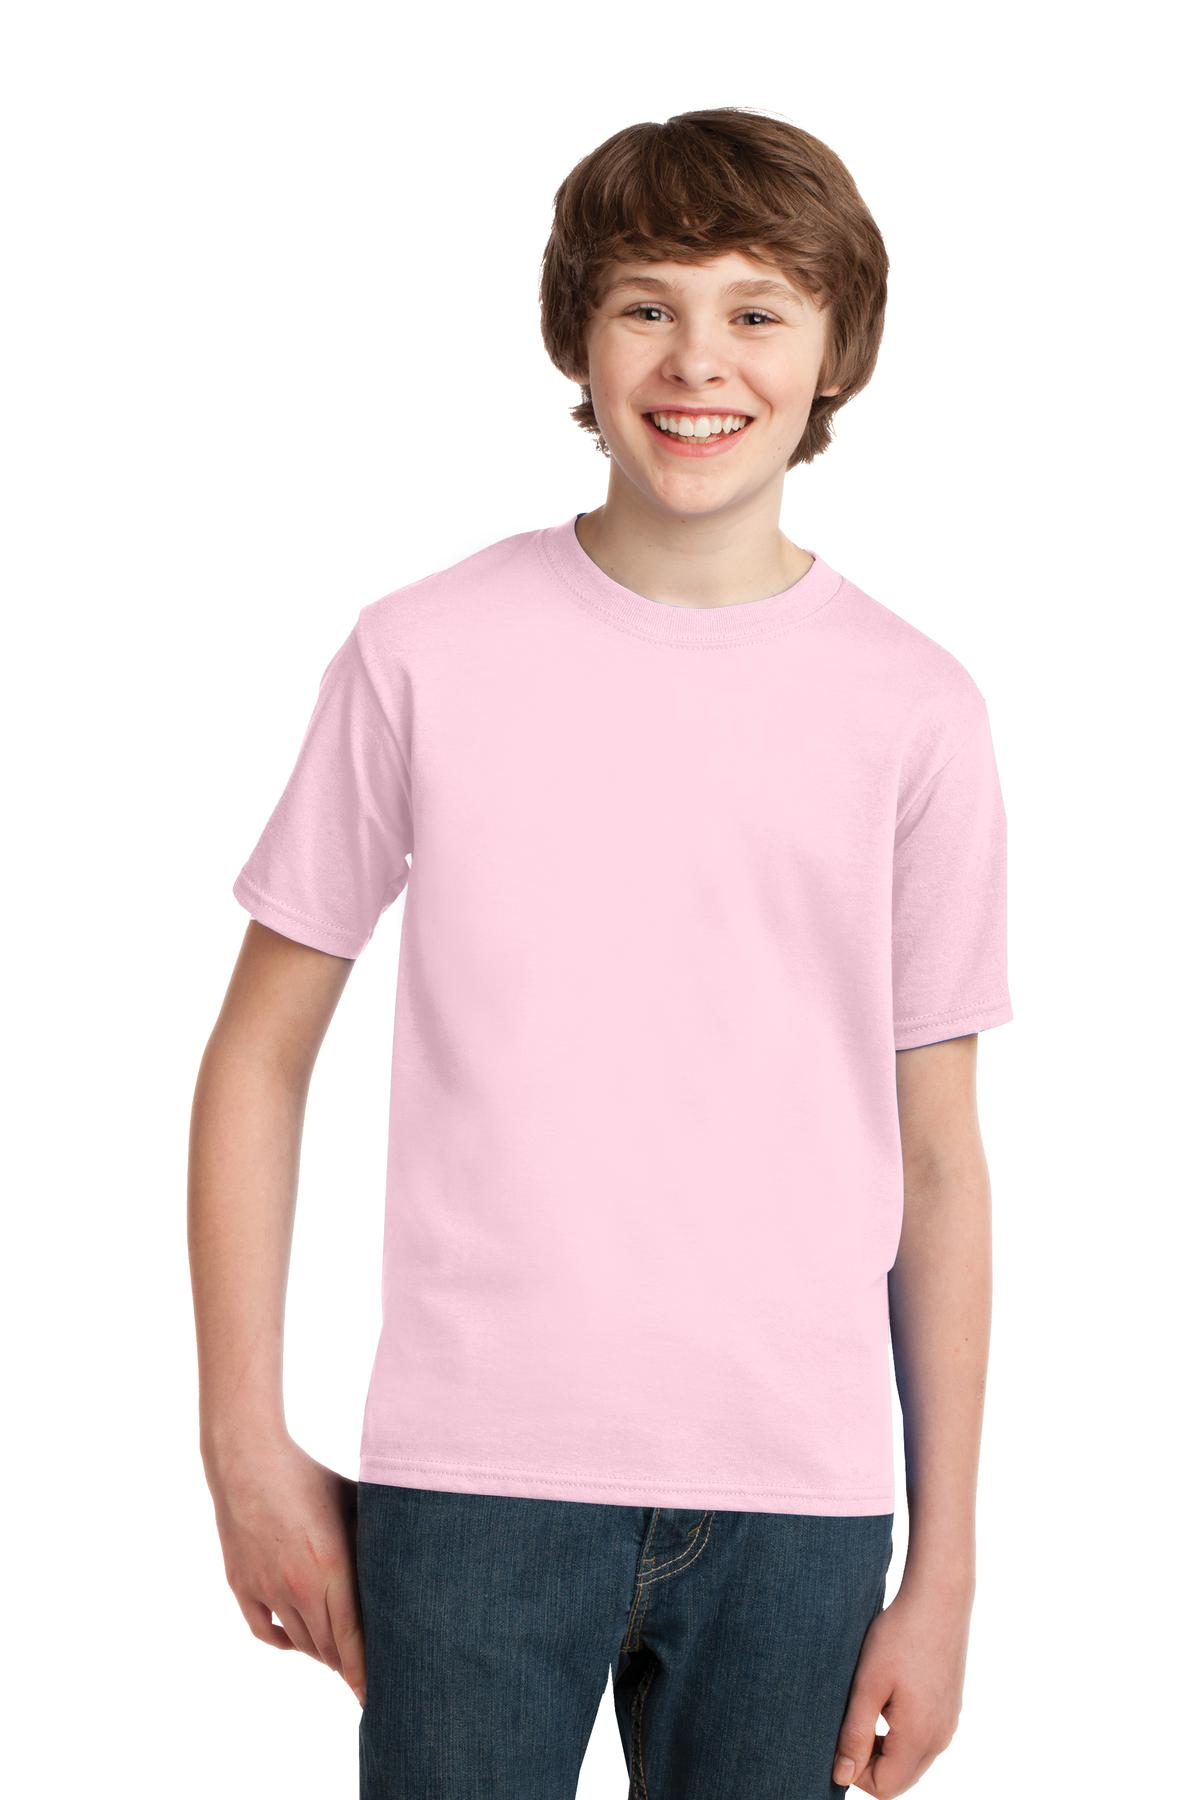 Port & Company ®  - Youth Essential Tee. PC61Y - Pale Pink